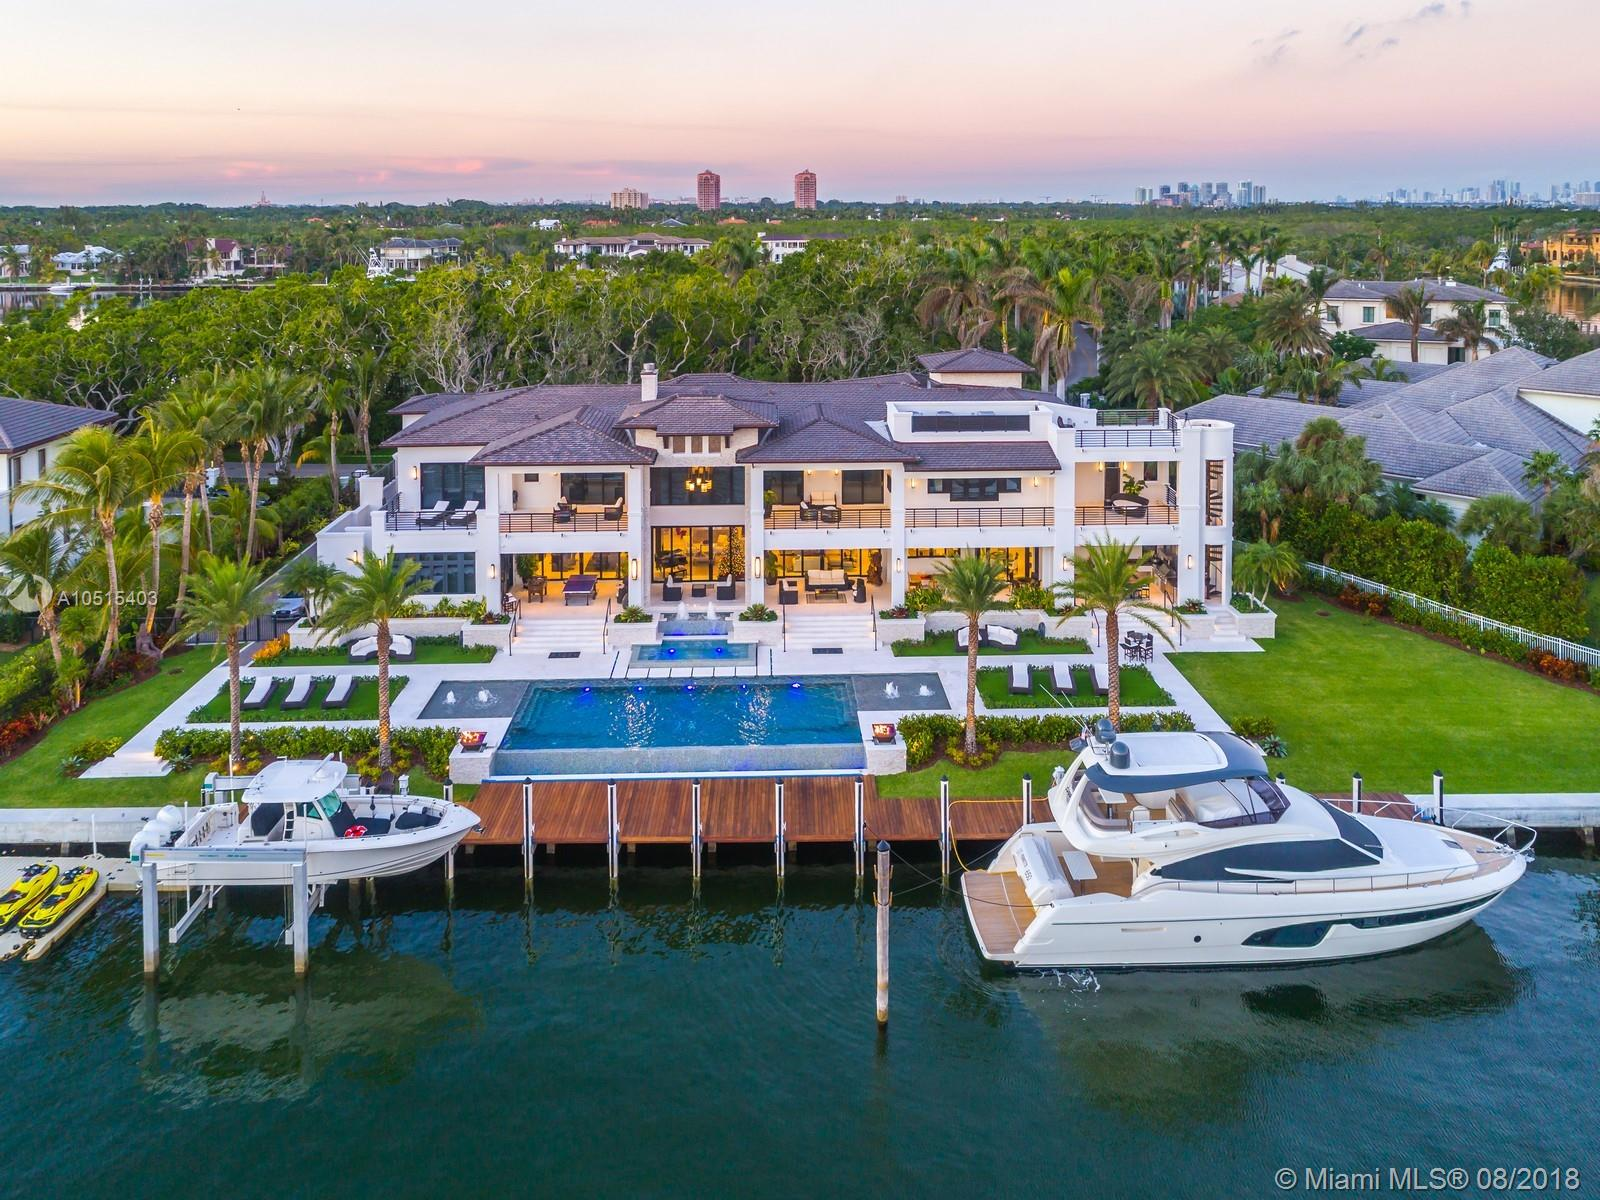 The Most Stunning Home In The Exclusive Guard-Gated Community Of Gables Estates. Premiere 255 Ft Of Water Frontage W/ 160 Ft Dock Situated On The Widest Part Of The Canal Just Few A Seconds From The Bay W/ Direct Ocean Access. Extraordinary 2017 Home W/ Fabulous Views Of Garden & Waterway Will Exceed Your Expectations Of A Unique Lifestyle Allowing Natural Light To Radiates Throughout Every Room. Features: Impressive Master Suite W/ Sitting Area Overlooking The Water & Enormous Marble Bathroom Spa Style W/ Outdoor Summer Shower, 14 Seats Estate Of The Art Theater Room W/ Optic Ceiling Lighting, Game Room W/ Wet Bar & Wine Cellar. Outdoor Entertainment Area W/ Summer Kitchen & Teppanaki Table, Covered Terraces, Rooftop Deck, And Infinity Edge<Br />Heated Pool W/ Fire Bowls & Fountains.